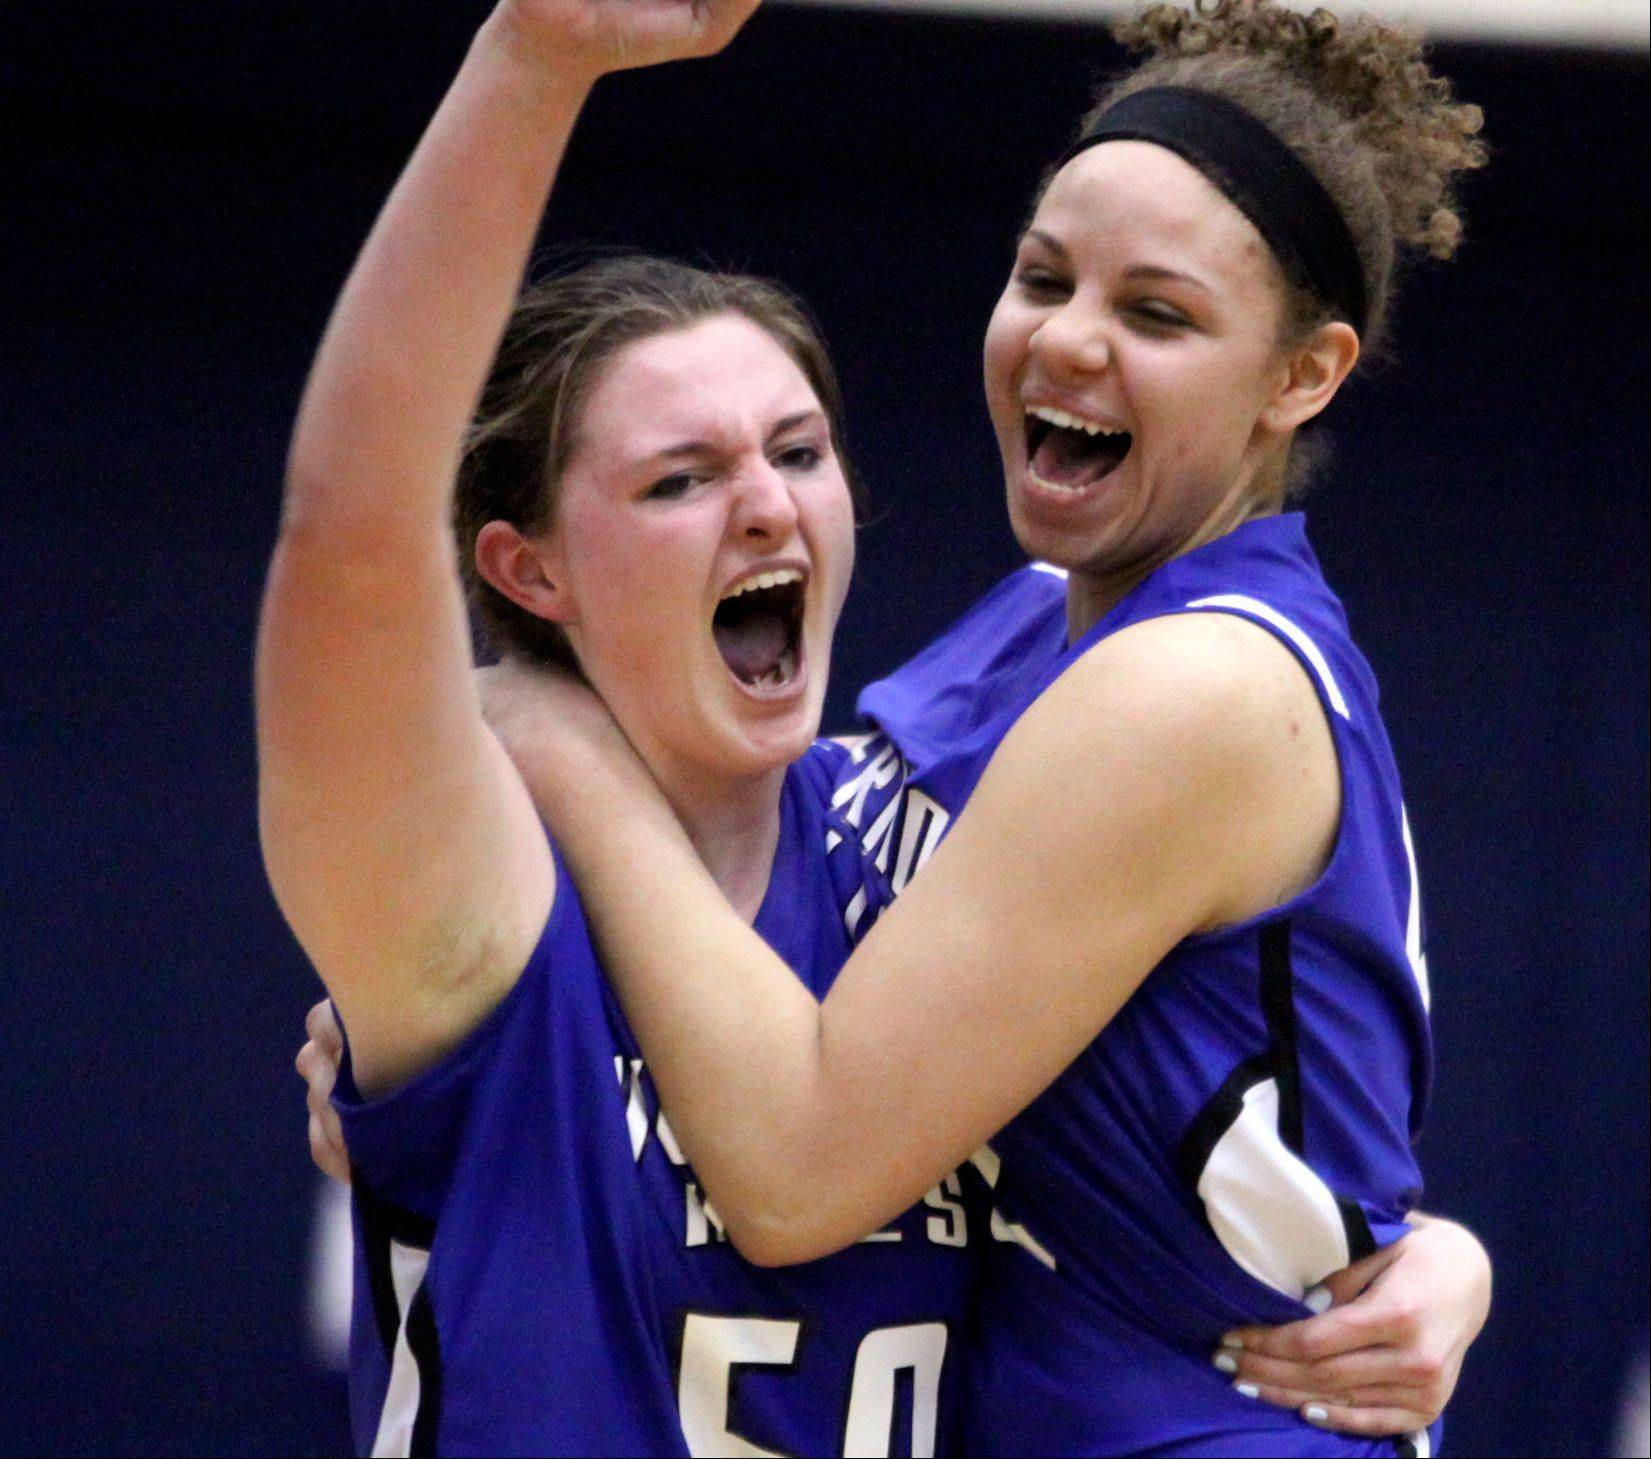 Images from the Burlington Central vs. Vernon Hills girls supersectional basketball game on Monday, February 25th, in Hoffman Estates.